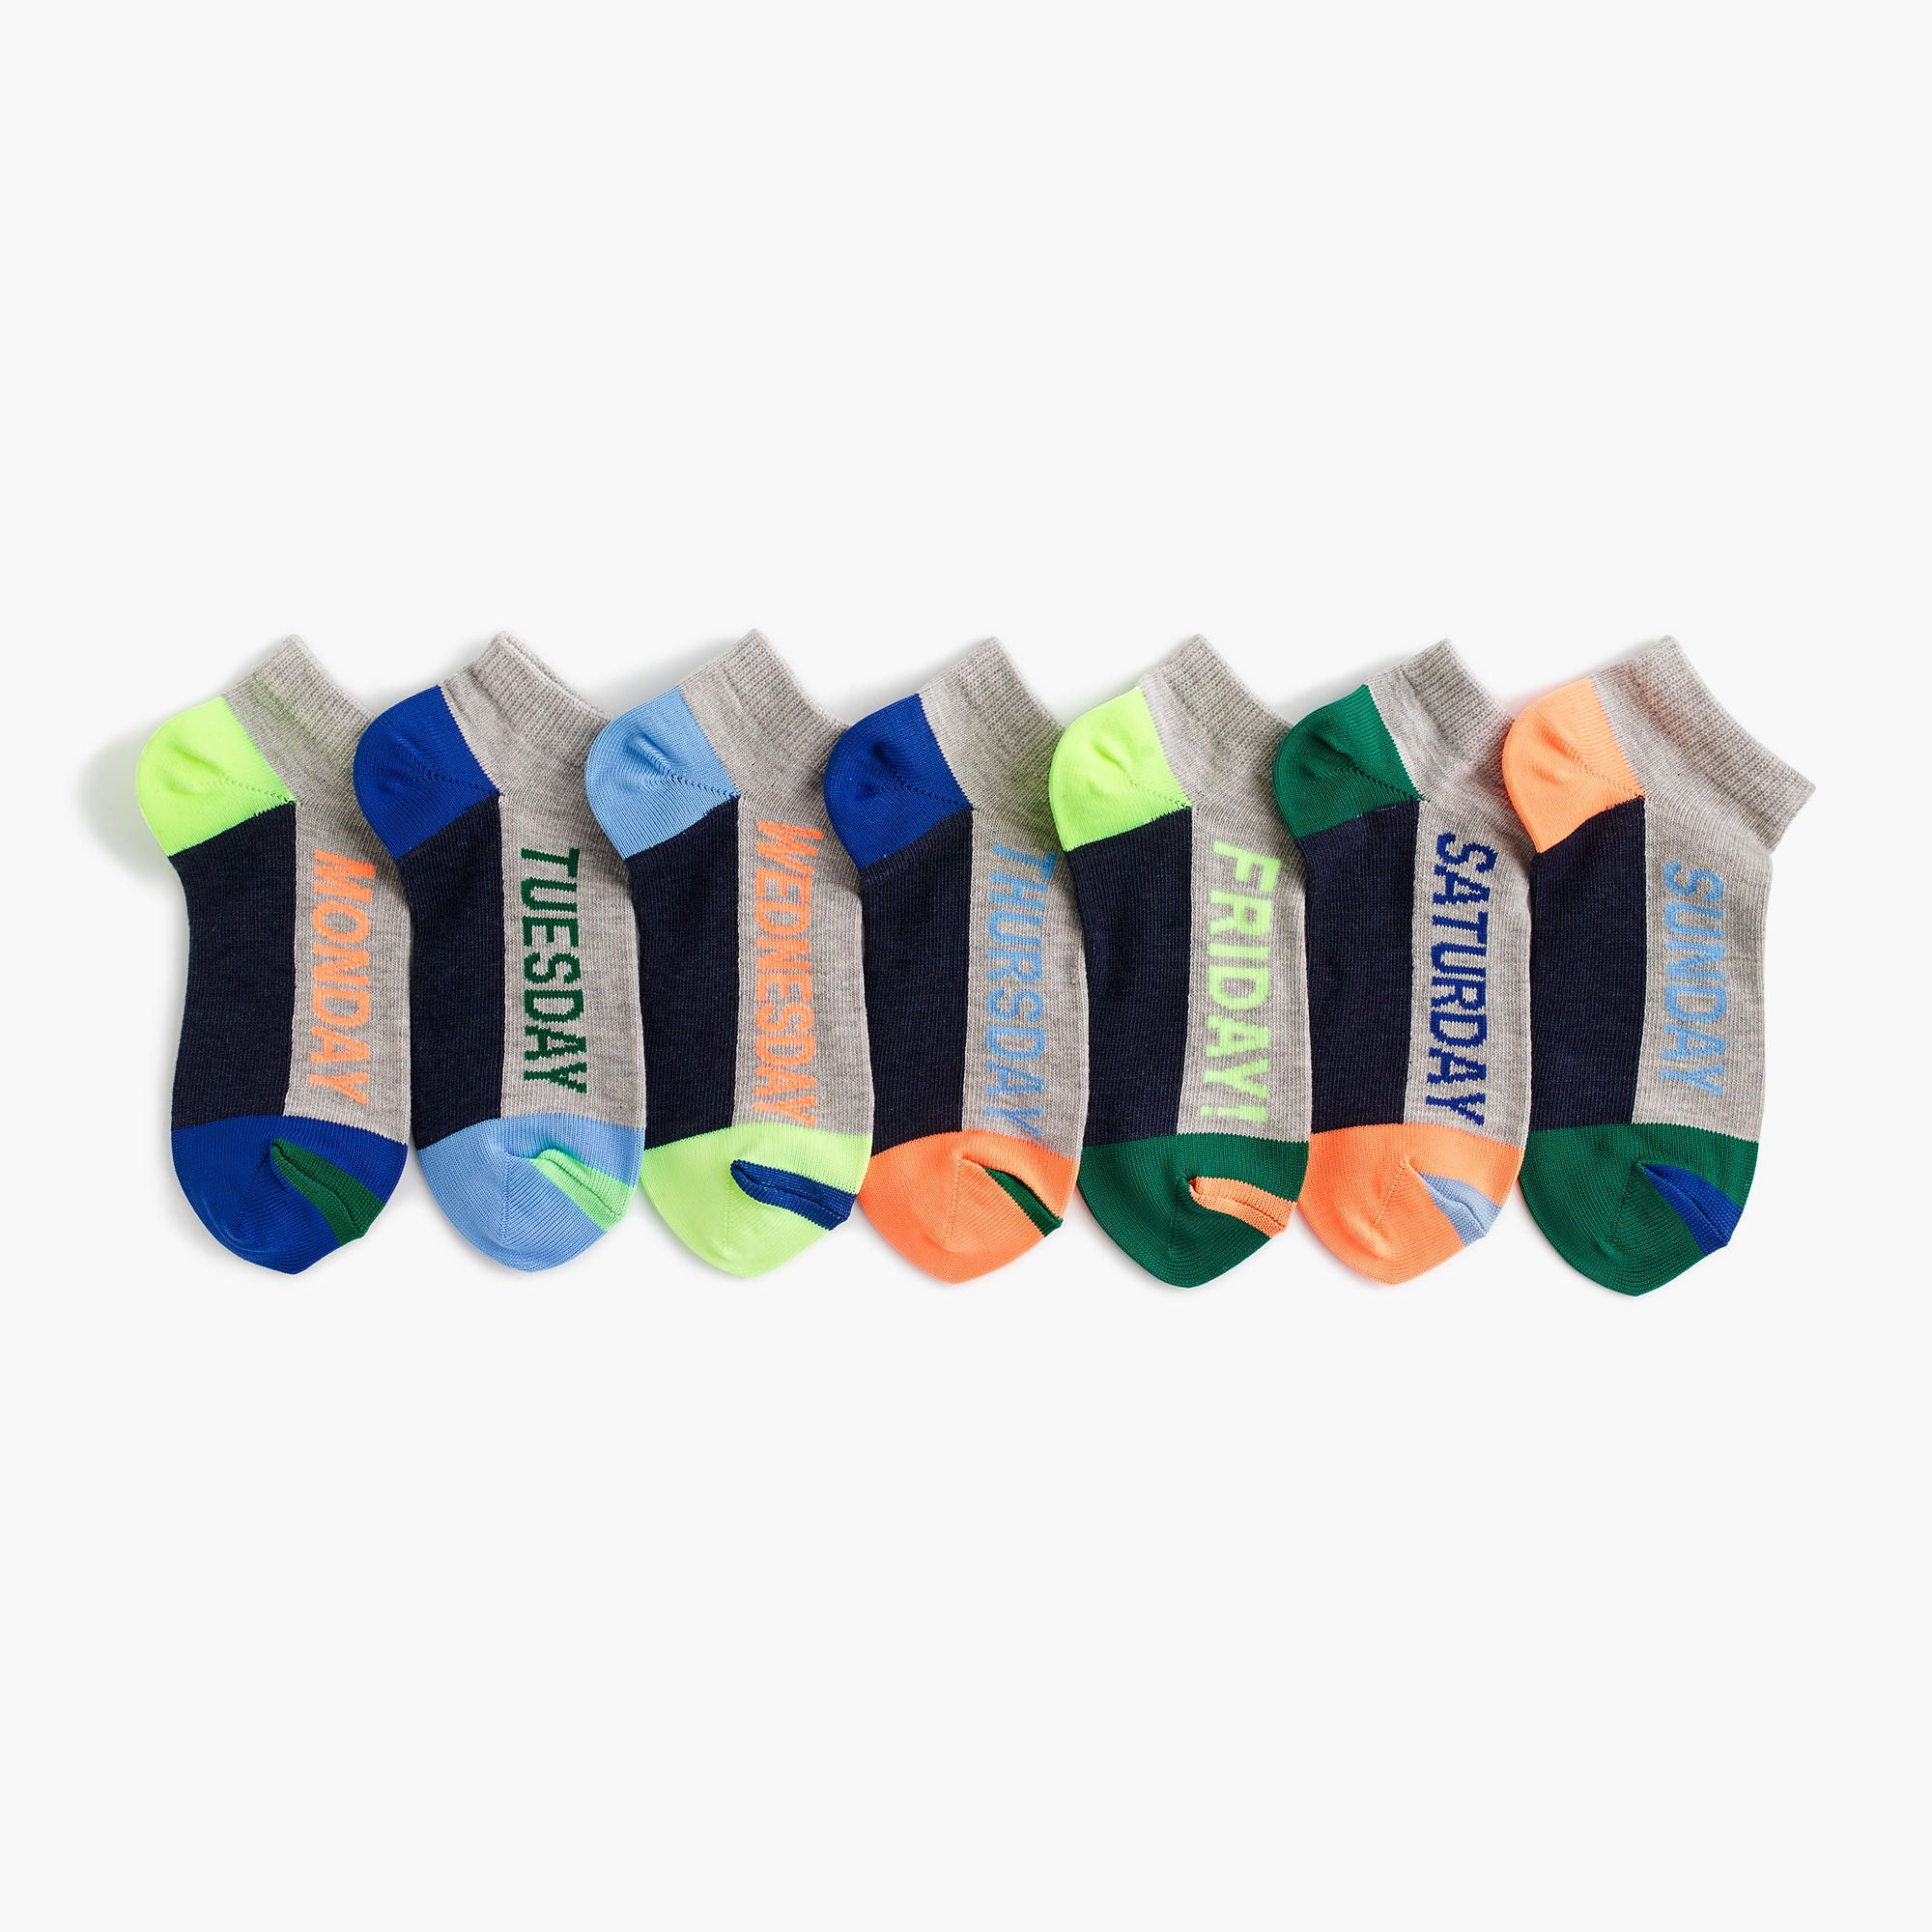 Days Of The Week Socks J Crew Boys Days Of The Week Socks Seven Pack With Images